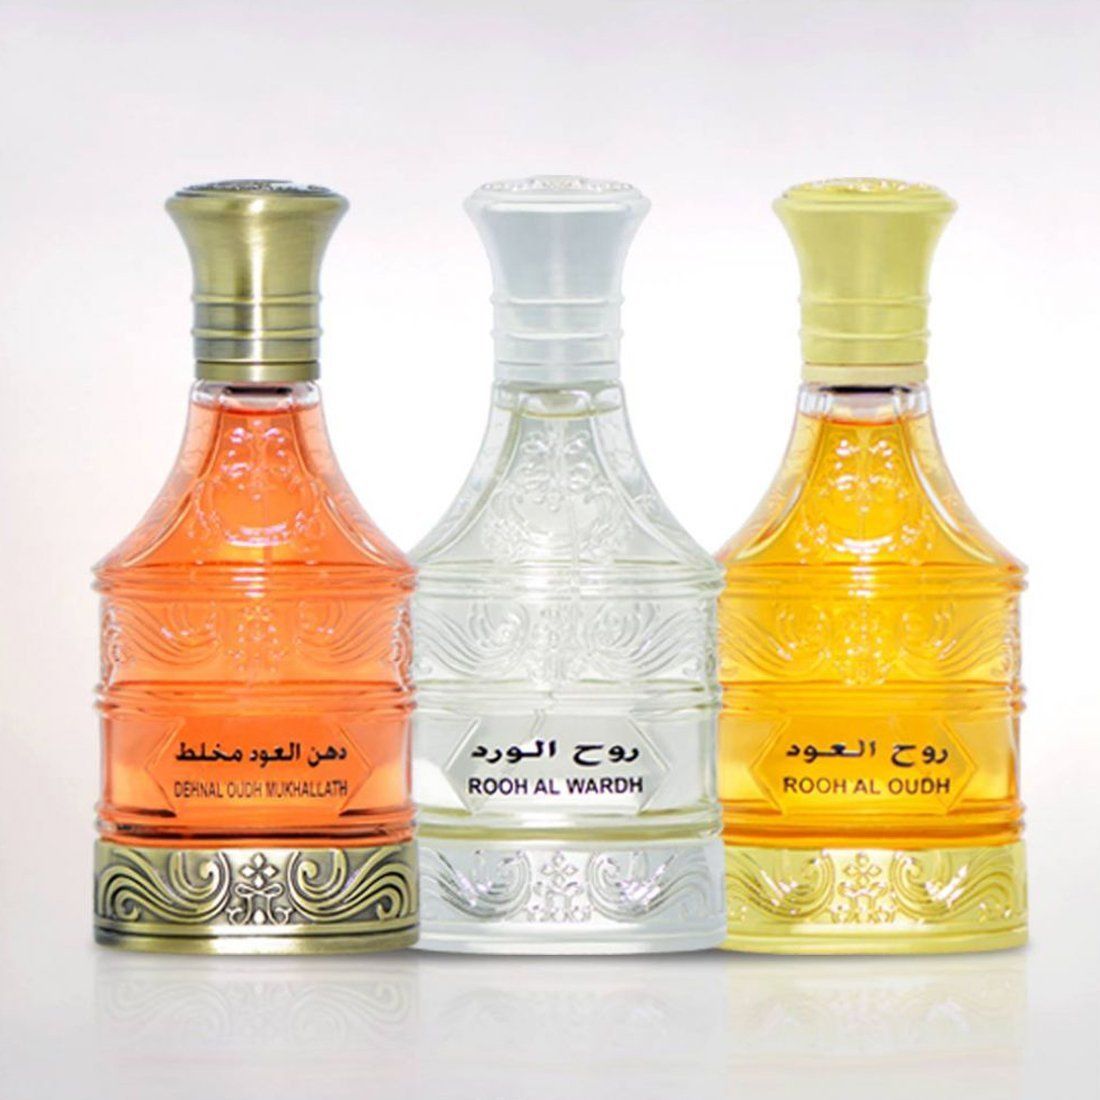 Al Haramain Majmuath Al Arab Pack Of 3 Perfume Spray - 3 x 55 ml